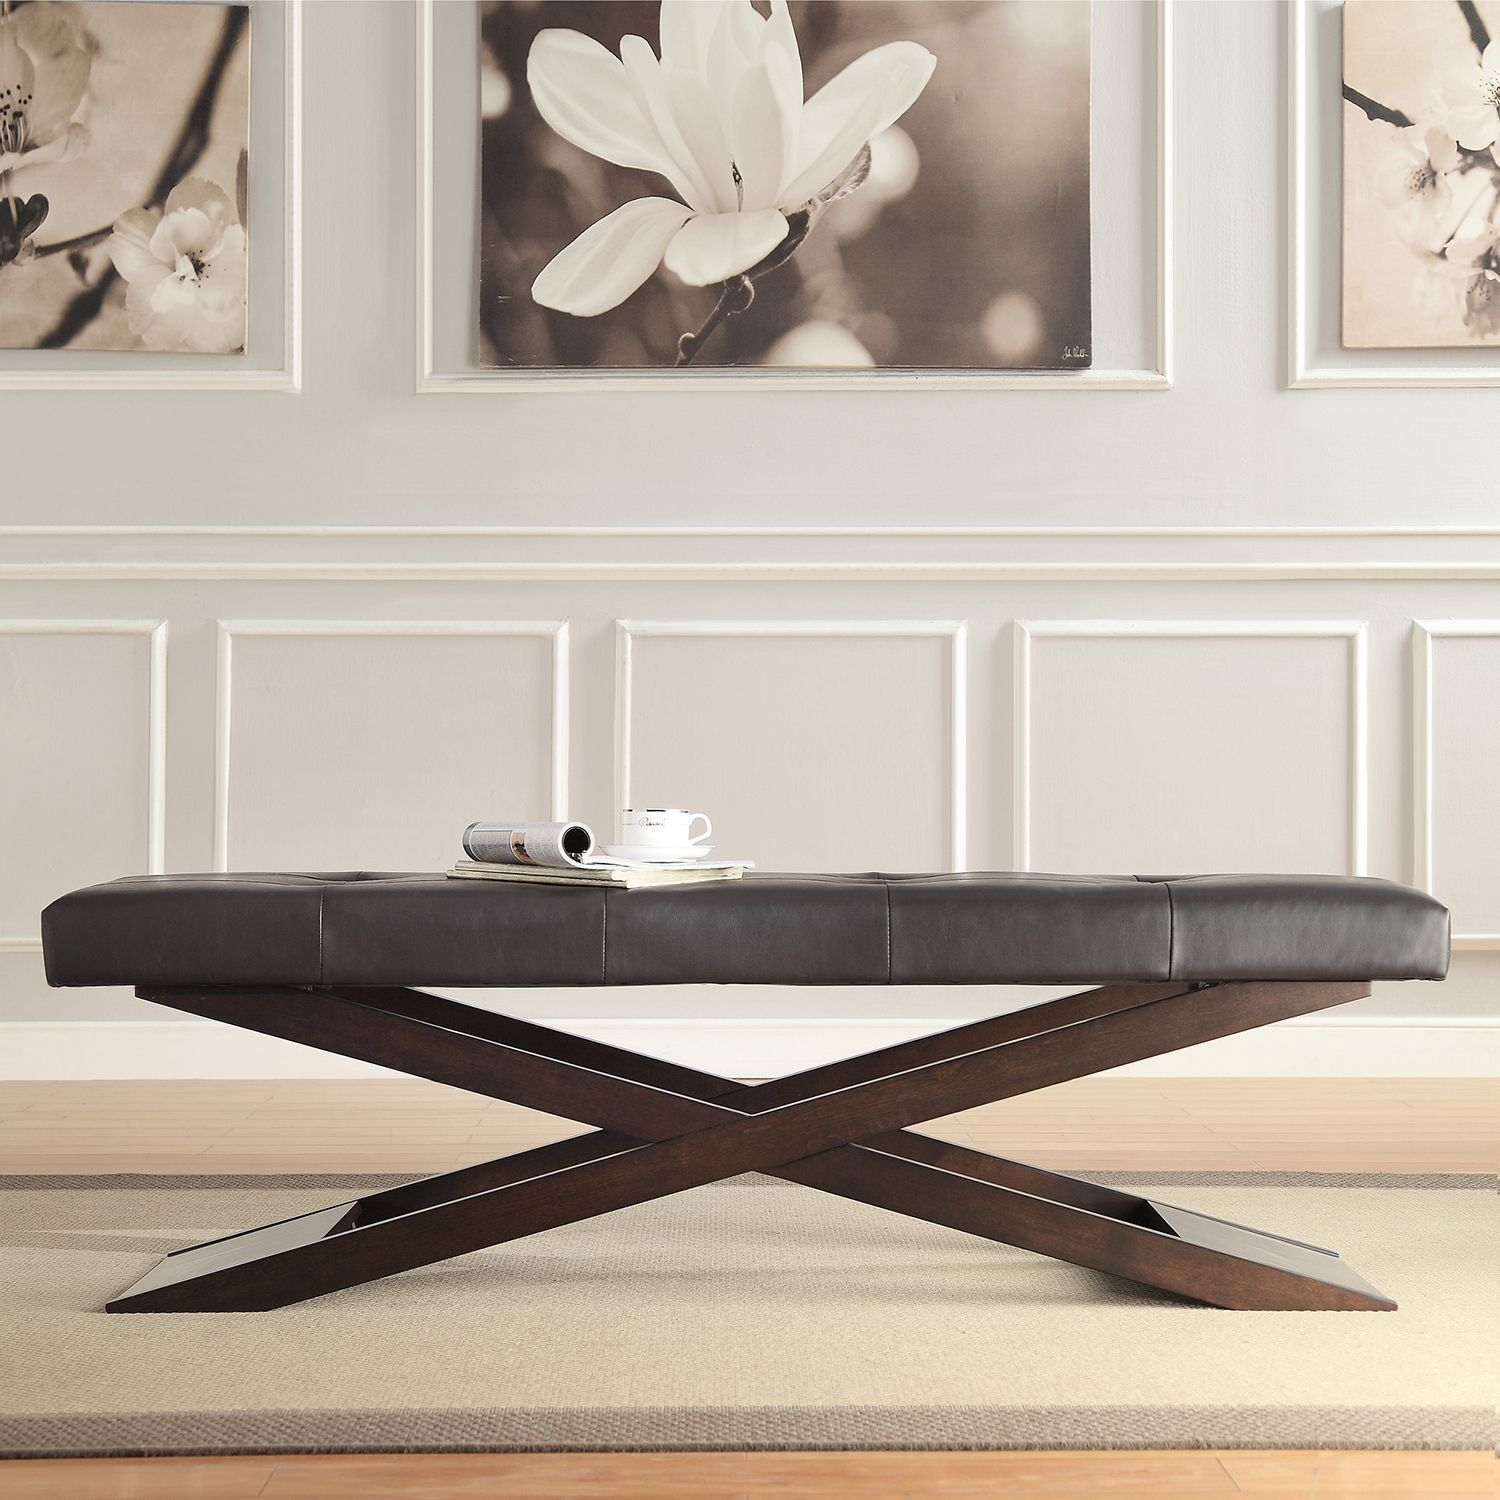 Add unique seating to your home with this contemporary trestle-style bench.  With a